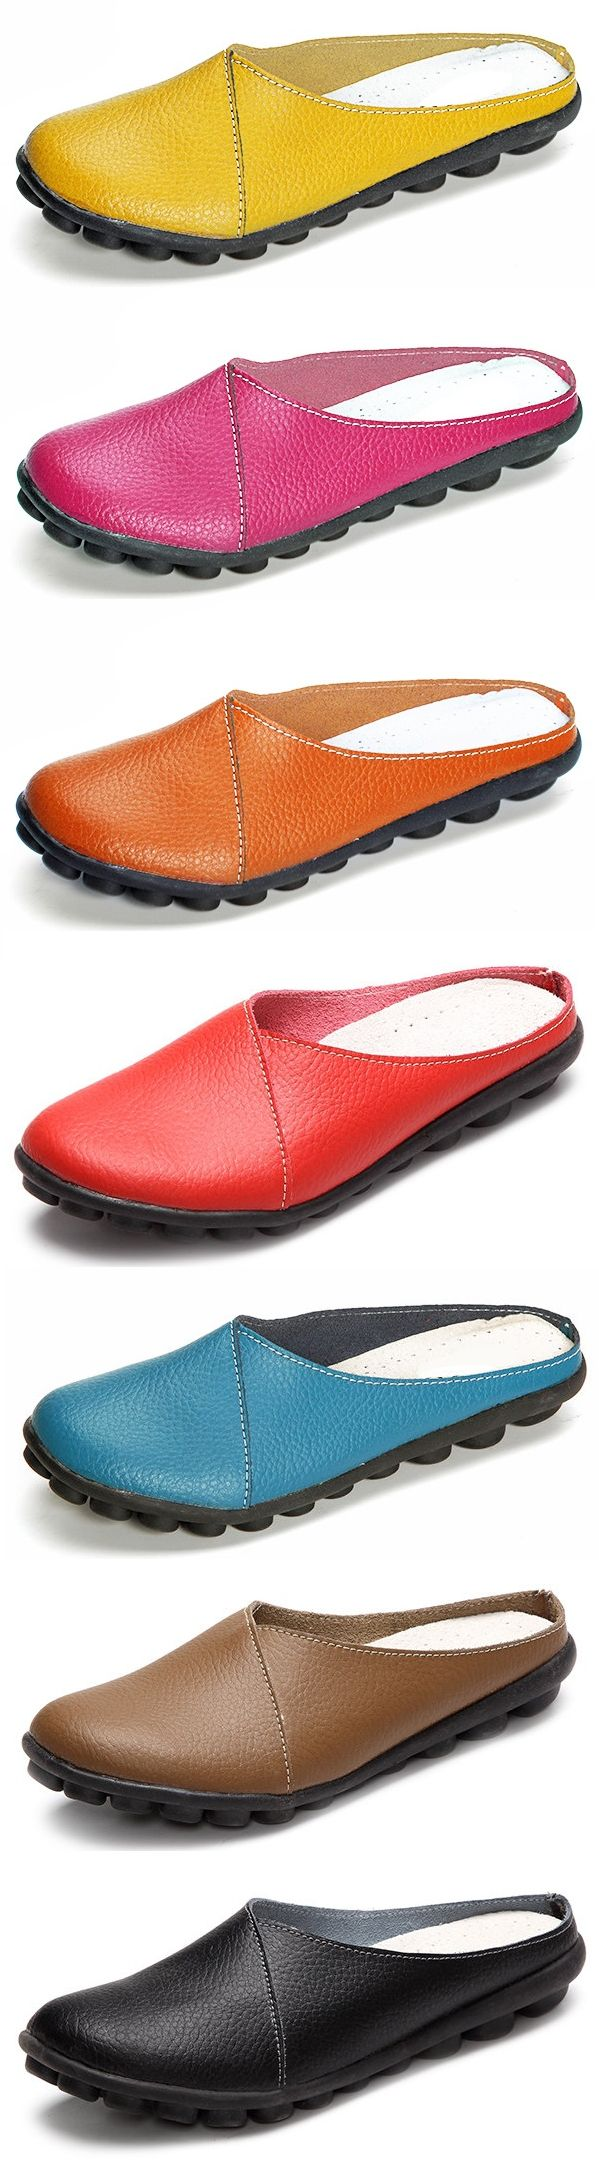 SOCOFY Big Size Pure Color Soft Sole Casual Open Heel Lazy Flat Shoes